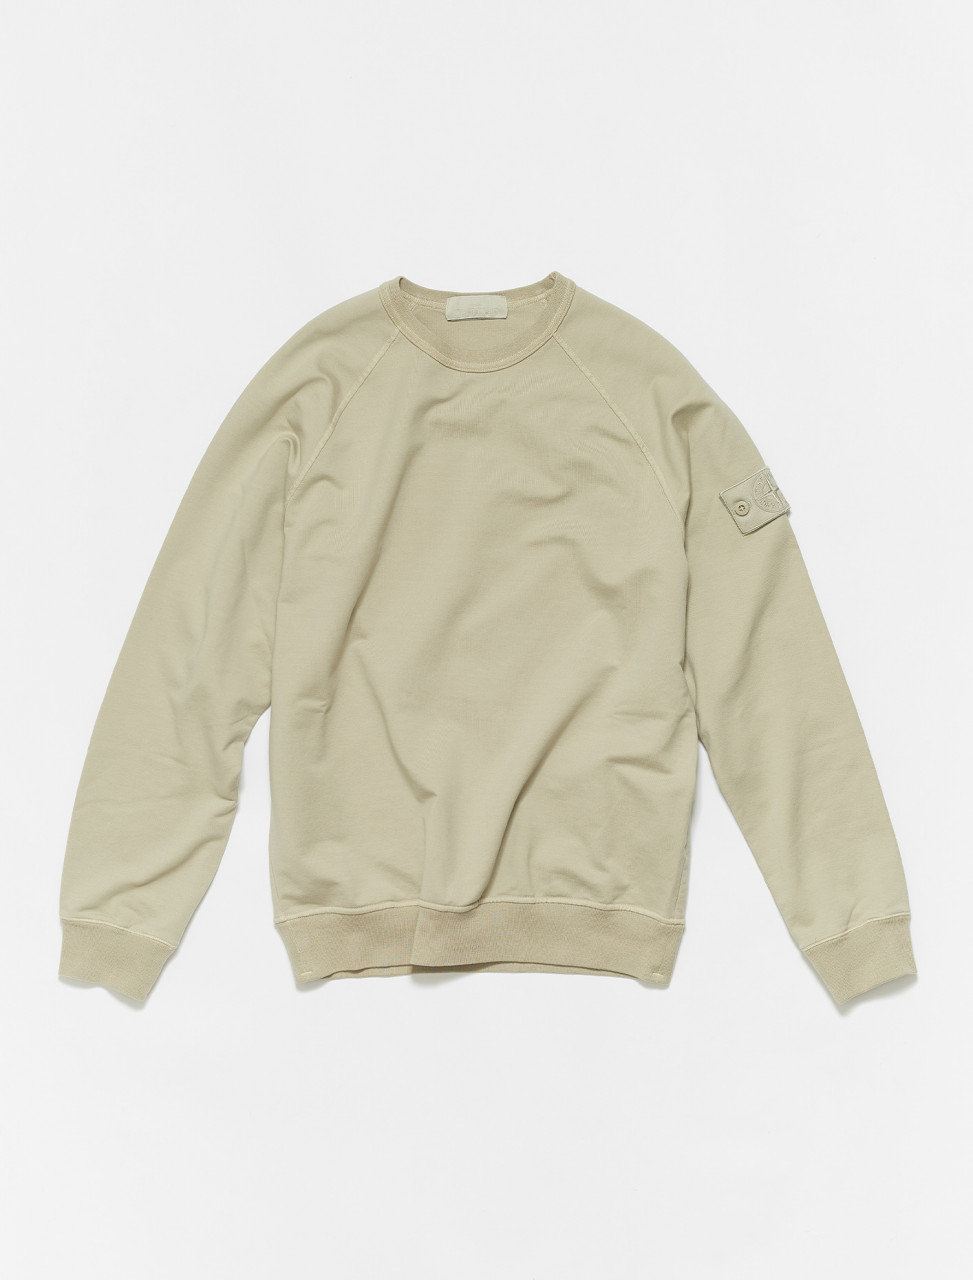 MO7415659F3-V0090 STONE ISLAND LONG SLEEVE SWEATSHIRT IN BEIGE